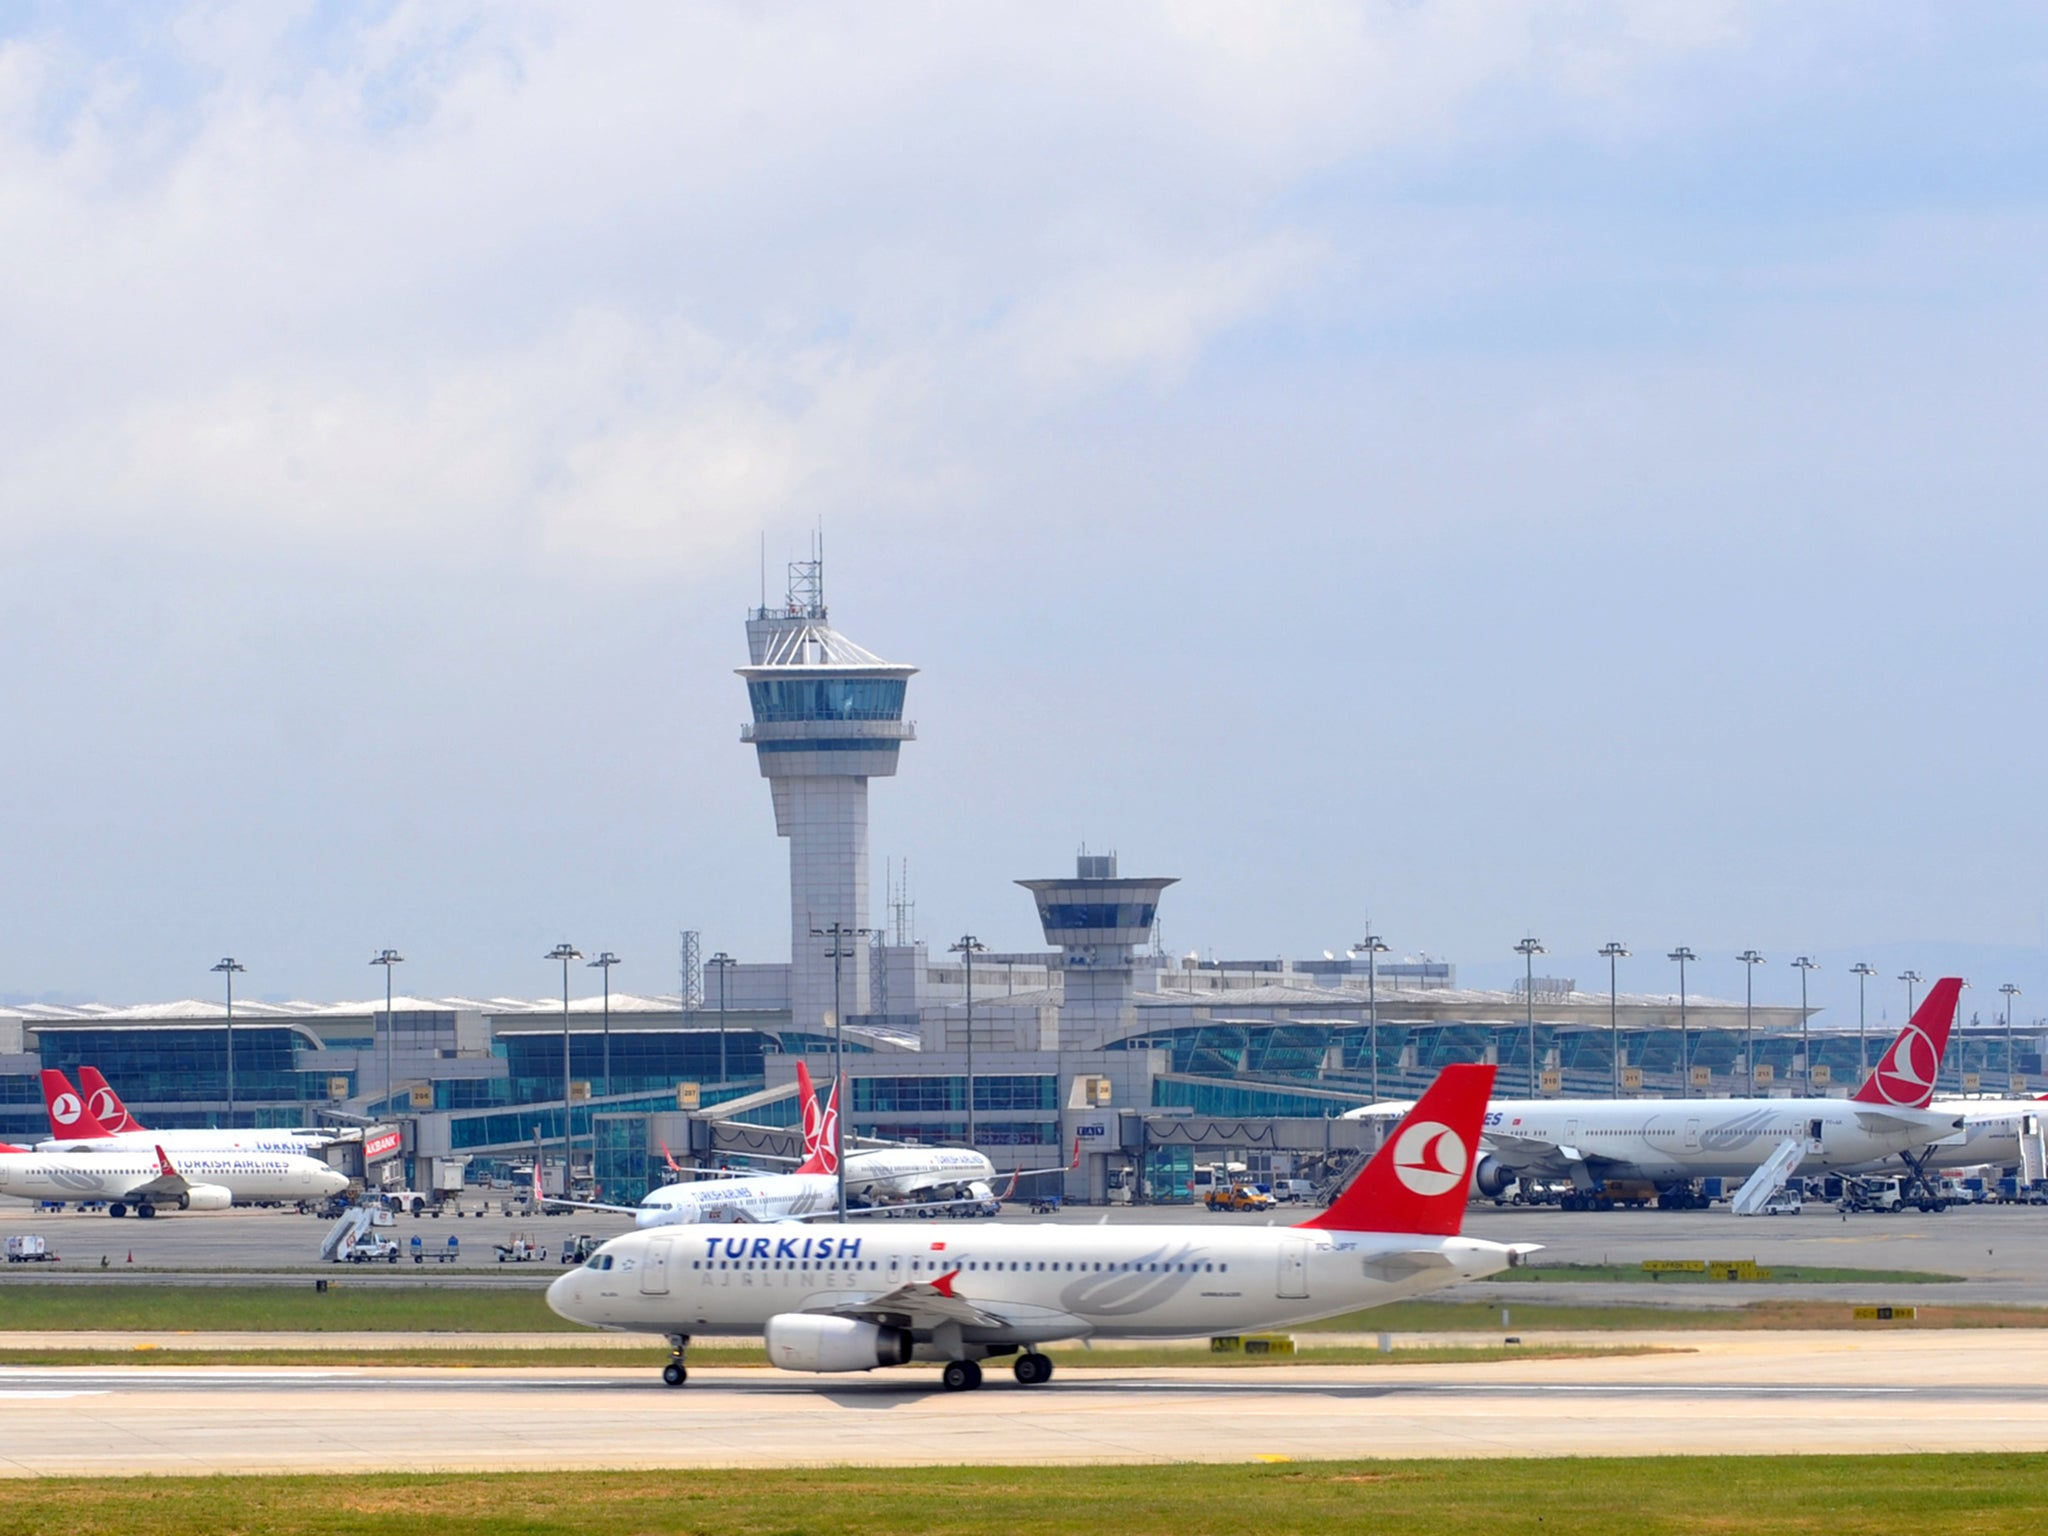 Woman refused boarding for flight due to nut allergy